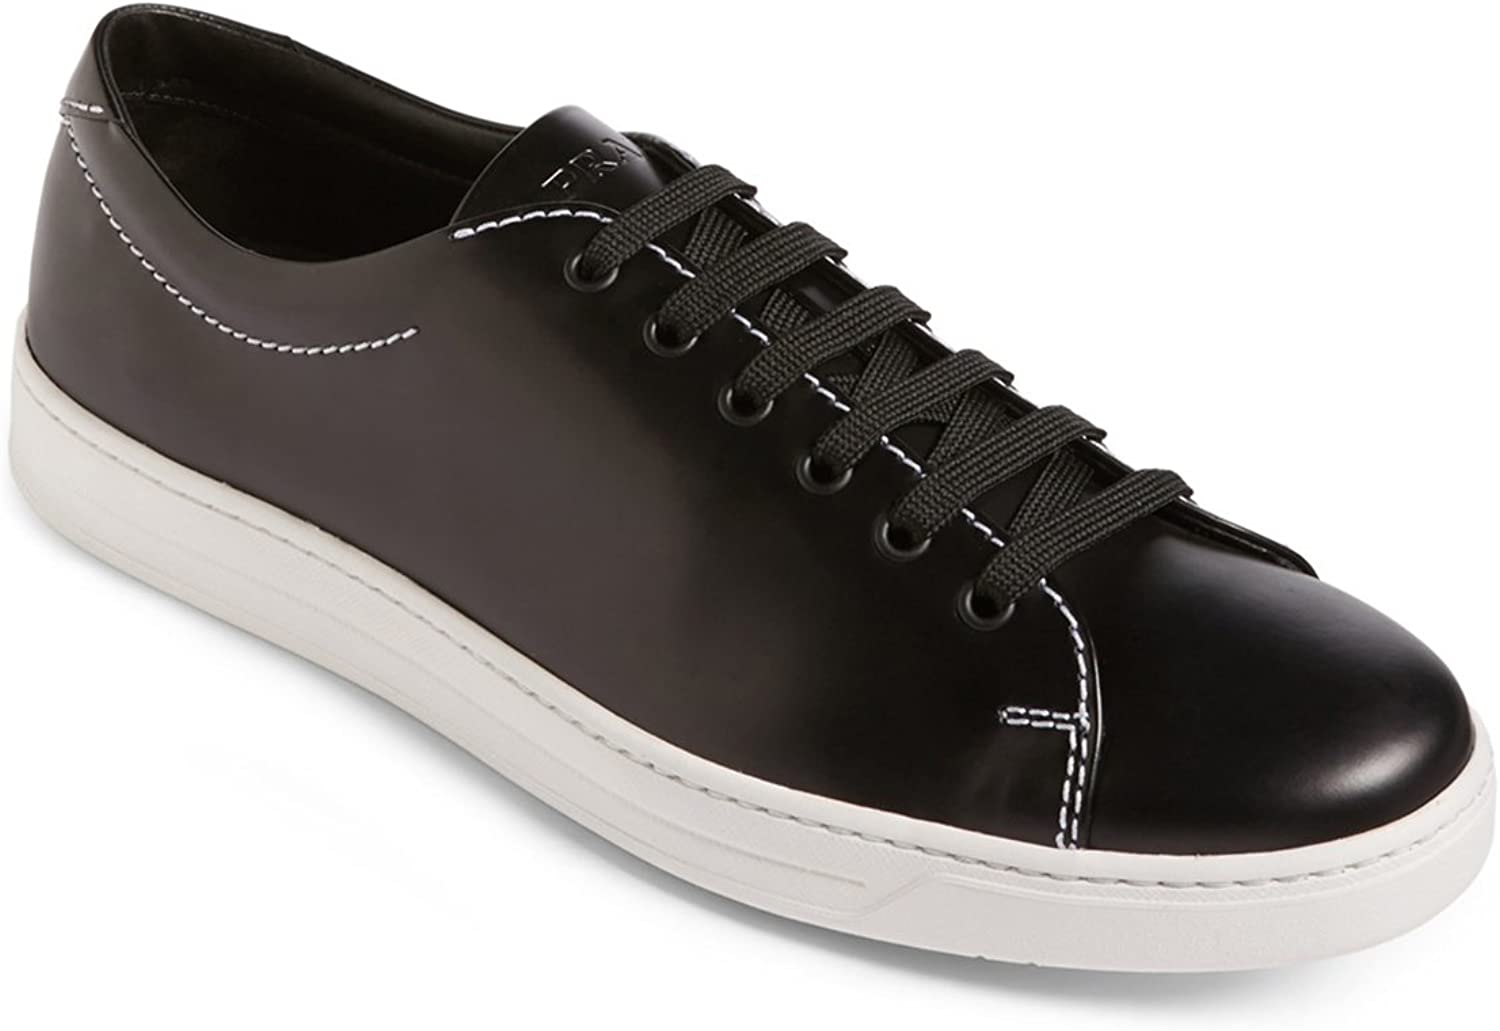 Prada Men's Brushed Calf Leather Low-top Sneaker, Black-White 4E3116